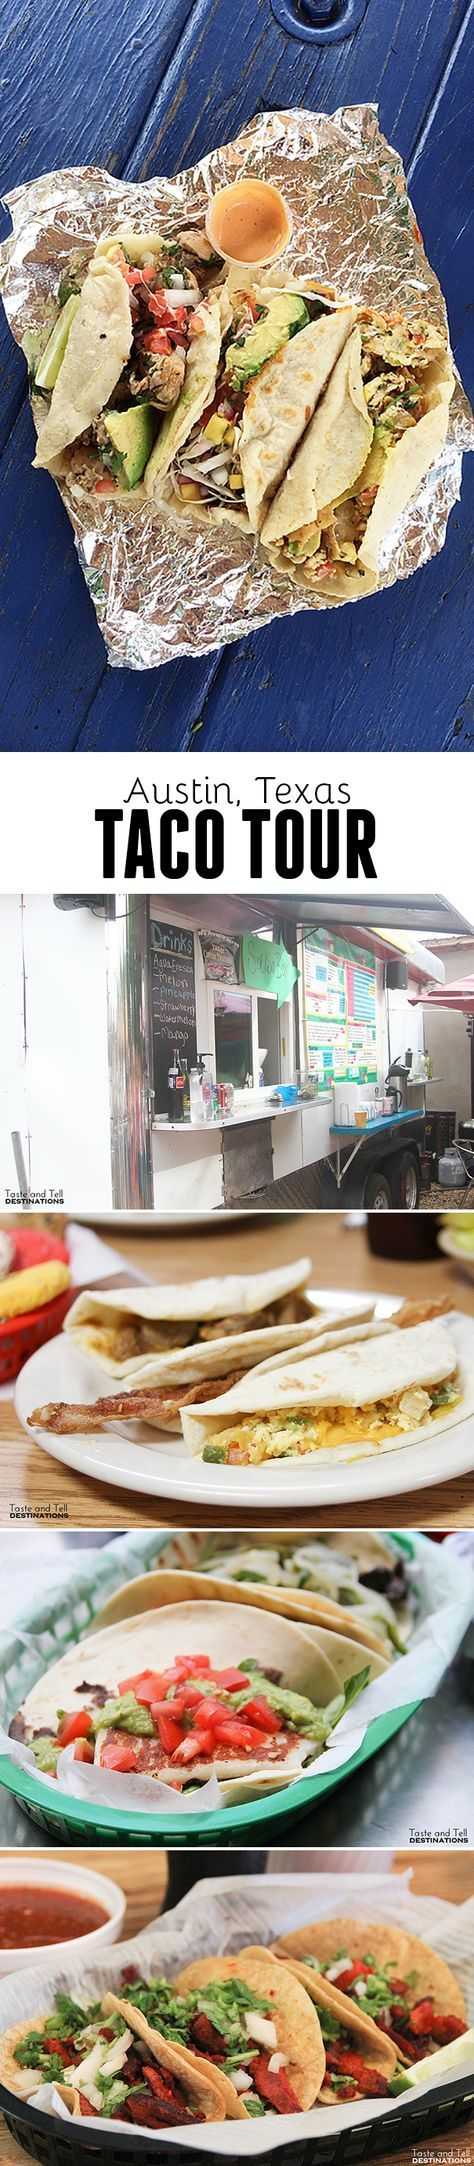 Taco Tour in Austin, Texas - 4 places to visit for great tacos!